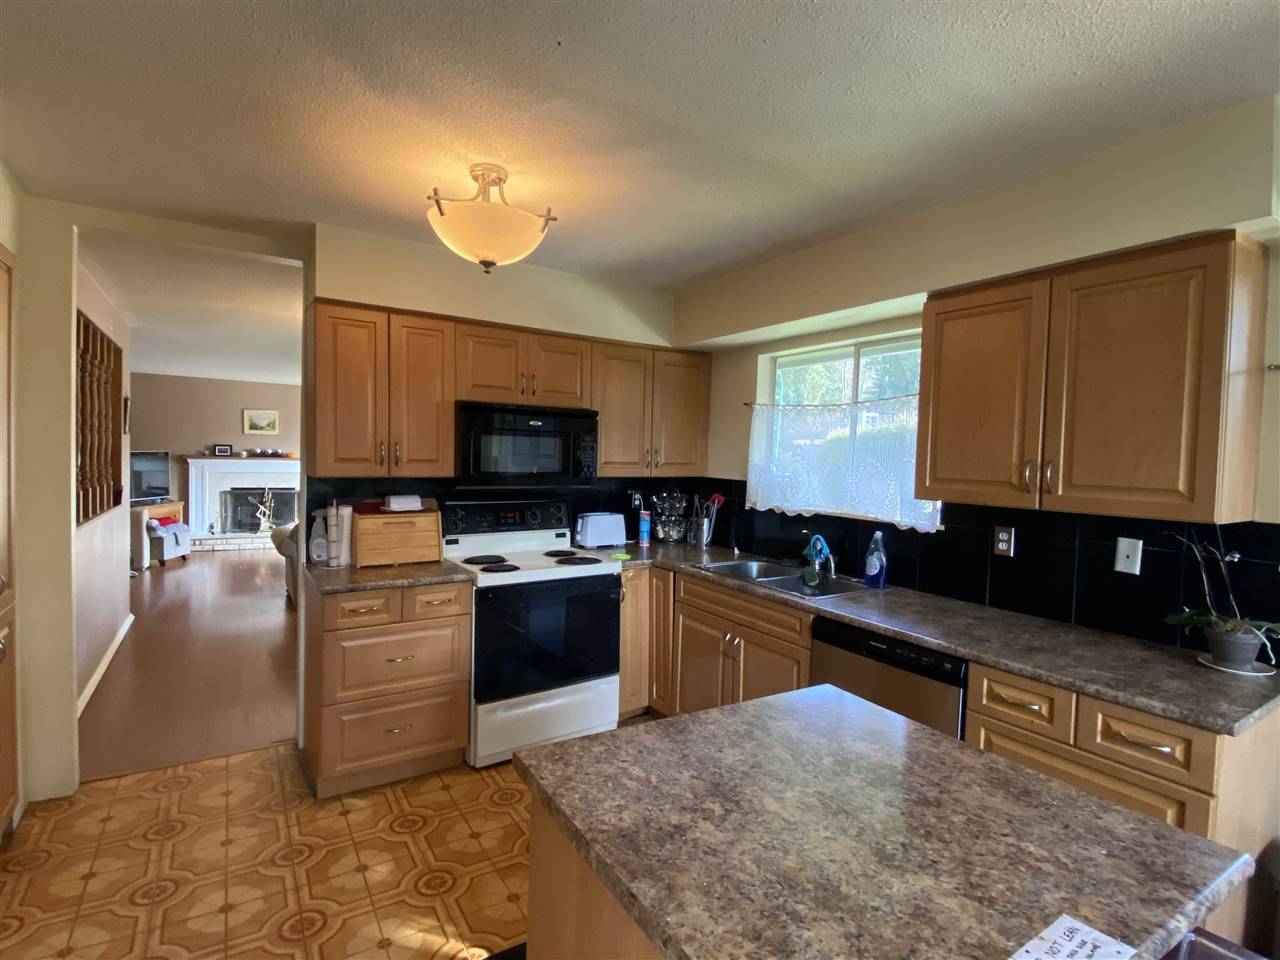 962 FREDERICK PLACE - Lynn Valley House/Single Family for sale, 4 Bedrooms (R2541307) - #9